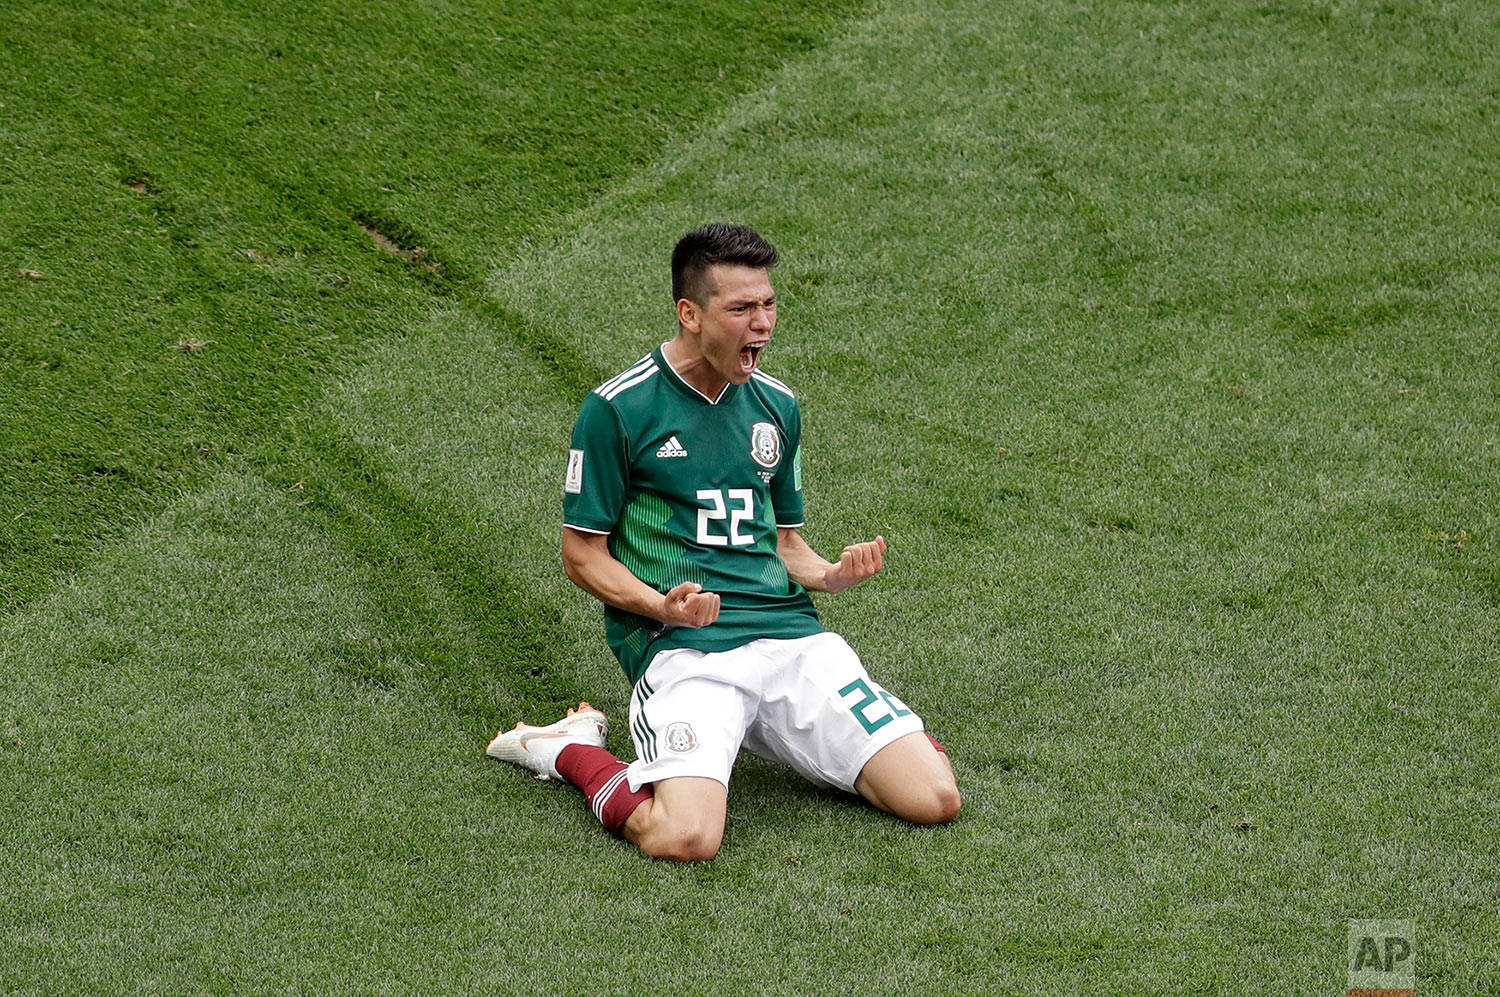 Mexico's Hirving Lozano celebrates after scoring the opening goal during the group F match between Germany and Mexico at the 2018 soccer World Cup in the Luzhniki Stadium in Moscow, Russia, Sunday, June 17, 2018. (AP Photo/Michael Probst)